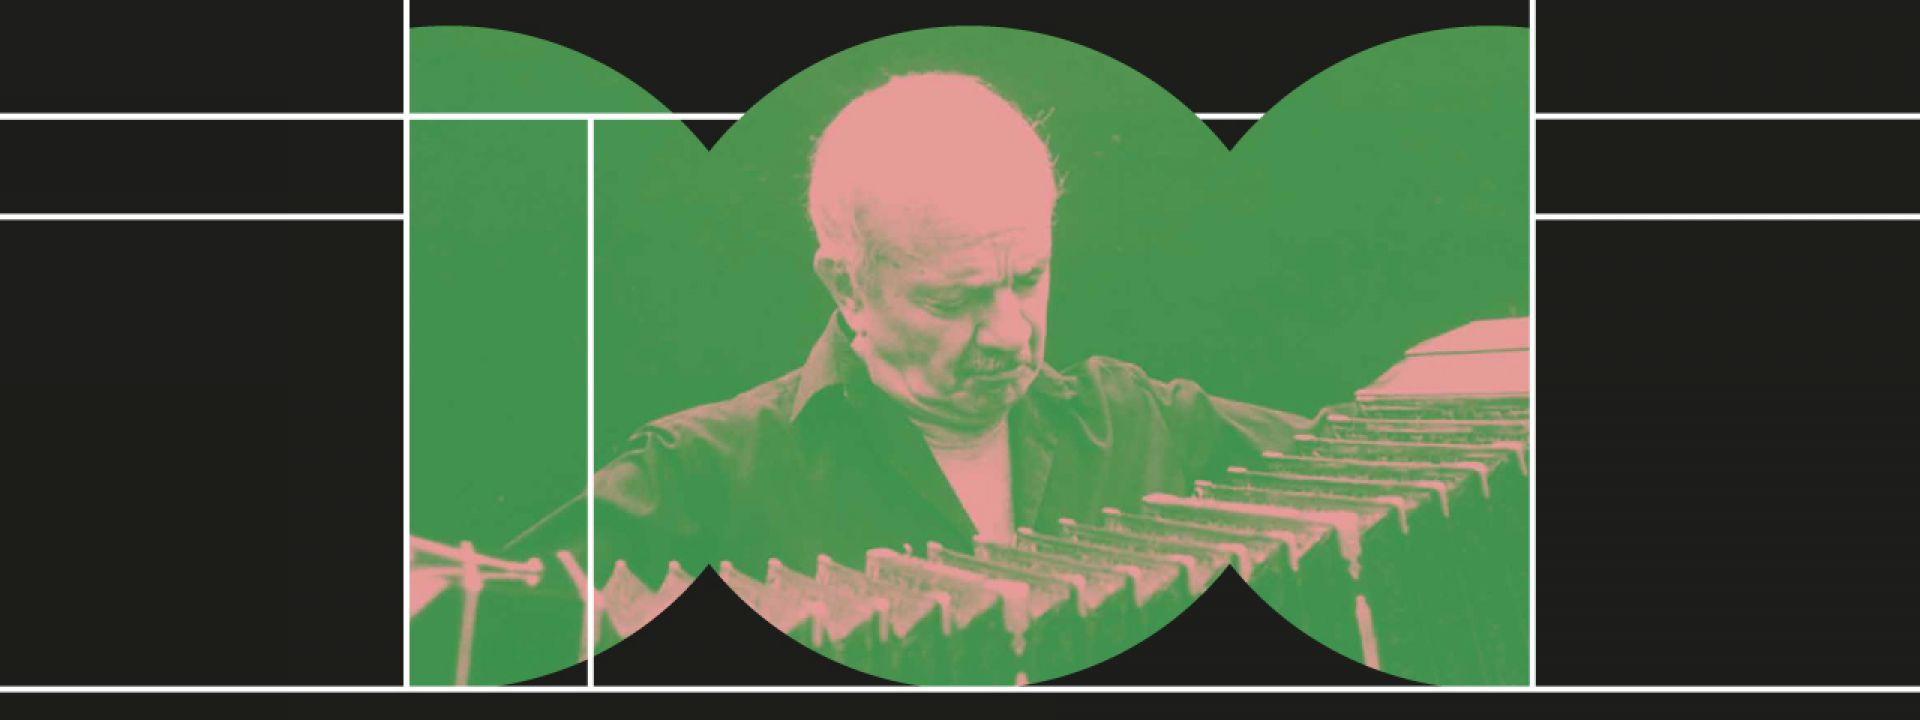 Creative with A. Piazzolla